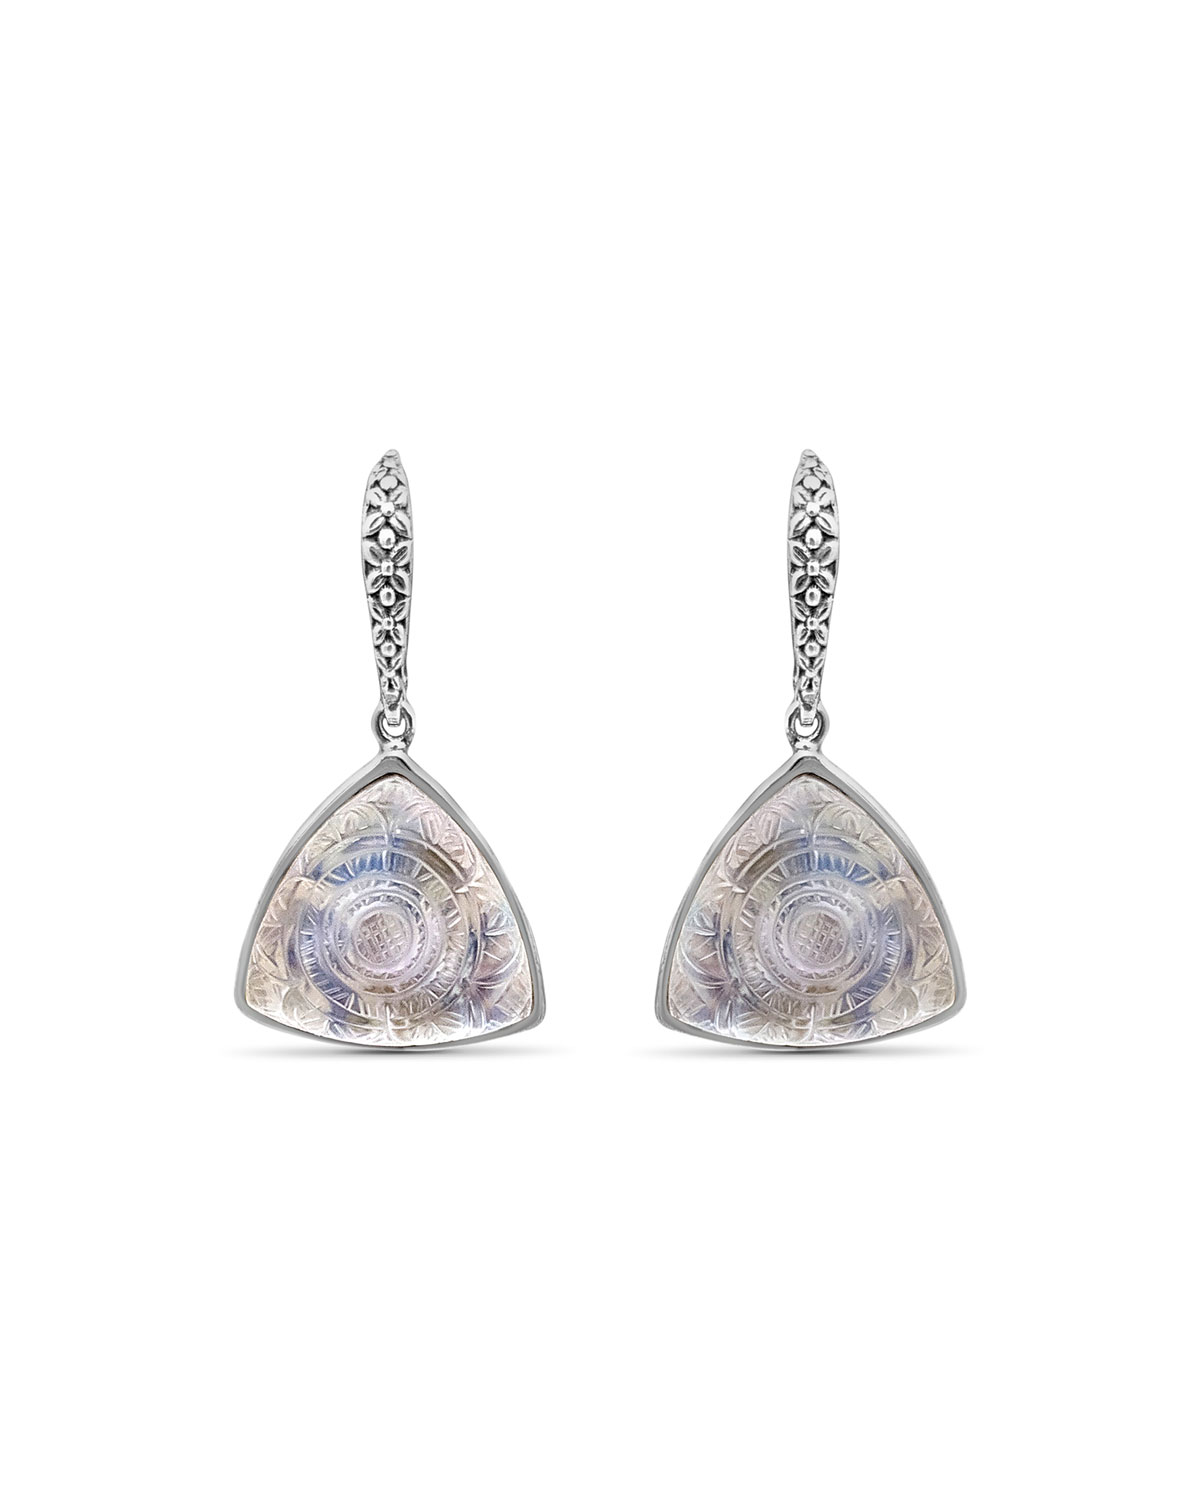 STEPHEN DWECK Carved Crystal Quartz Triangle Drop Earrings